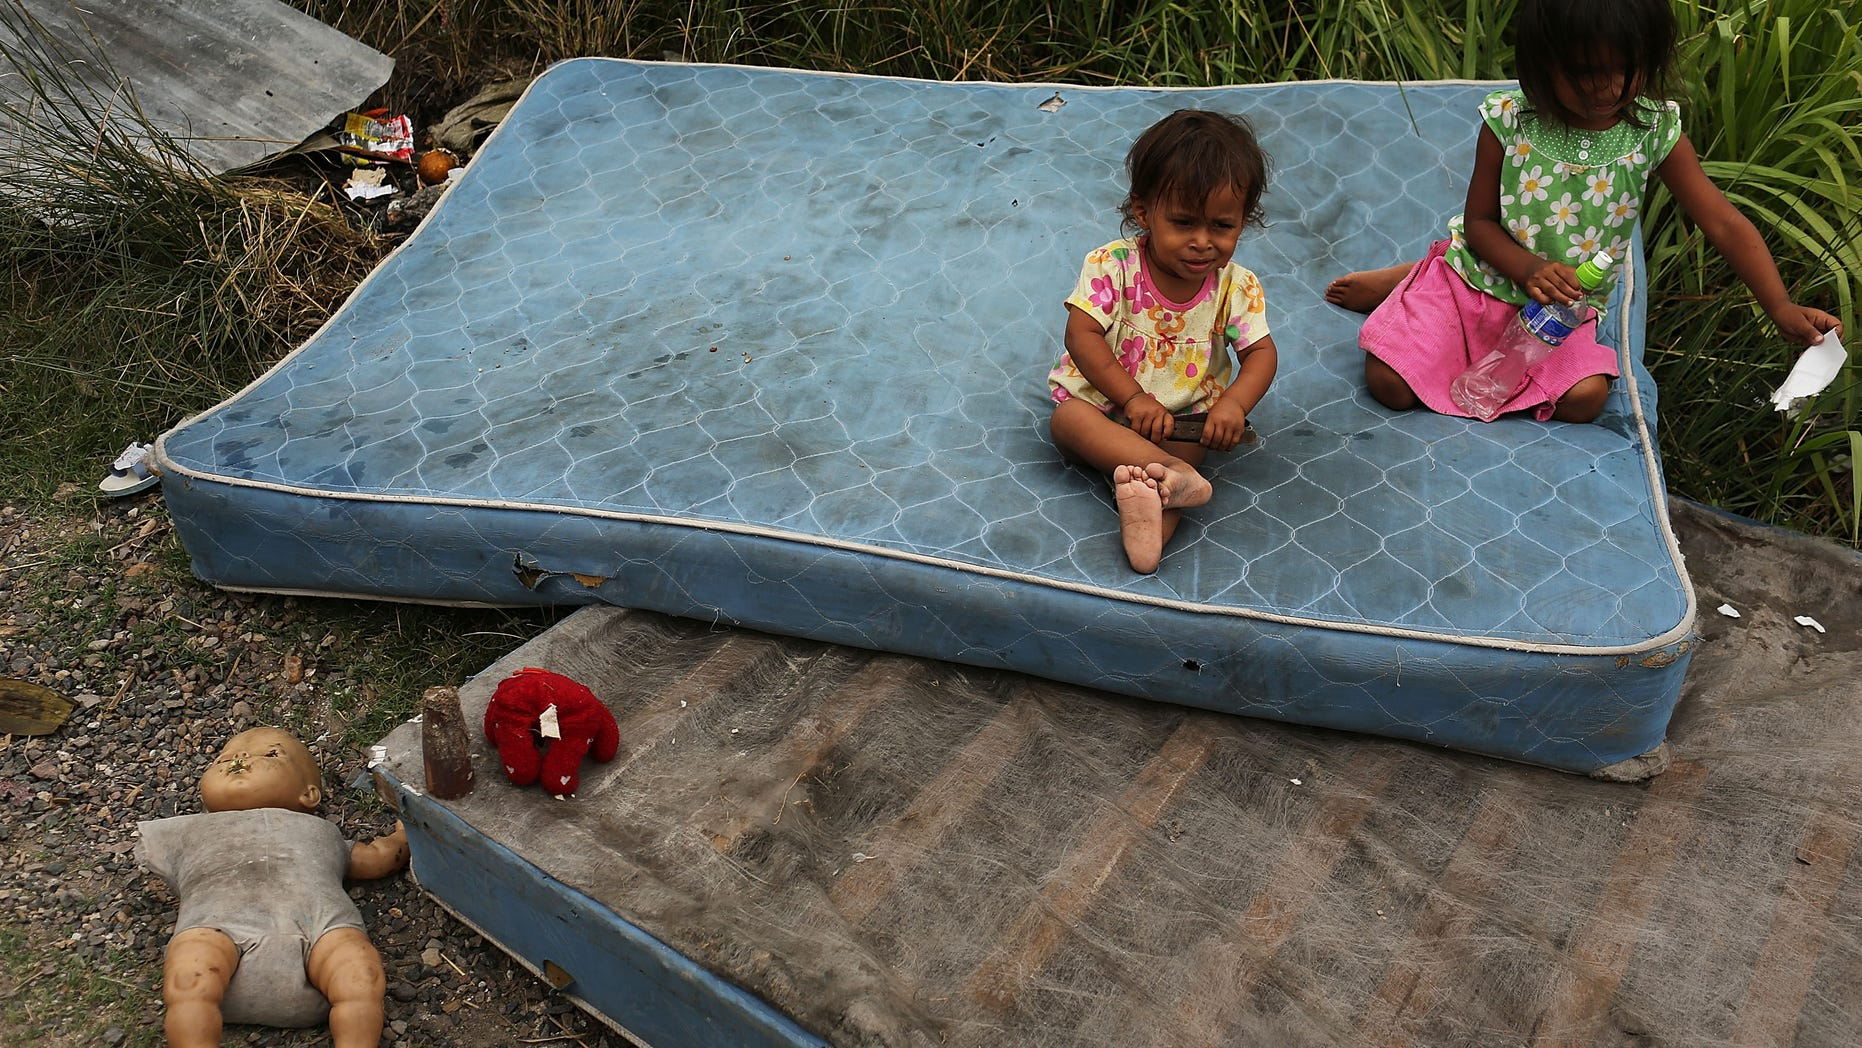 TEGUCIGALPA, HONDURAS - JULY 20:  Children sit on mattresses as their home and neighborhood are forcefully dismantled in a shanty town after the government claimed that the settlement was illegal on July 20, 2012 in Tegucigalpa, Honduras. Land disputes are becoming increasingly frequent in Honduras  which is alarming the nation's business class while sowing fears of increased political violence. In a nation where 72% of the poorest landowners hold only 11.6% of cultivated land, tensions are rising as the poor have few places to go and little opportunities for productive employment. Honduras now has the highest per capita murder rate in the world and its capital city, Tegucigalpa, is plagued by violence, poverty, homelessness and sexual assaults. With an estimated 80% of the cocaine entering the United States now being trans-shipped through Honduras, the violence on the streets is a spillover from the ramped rise in narco-trafficking.  (Photo by Spencer Platt/Getty Images)